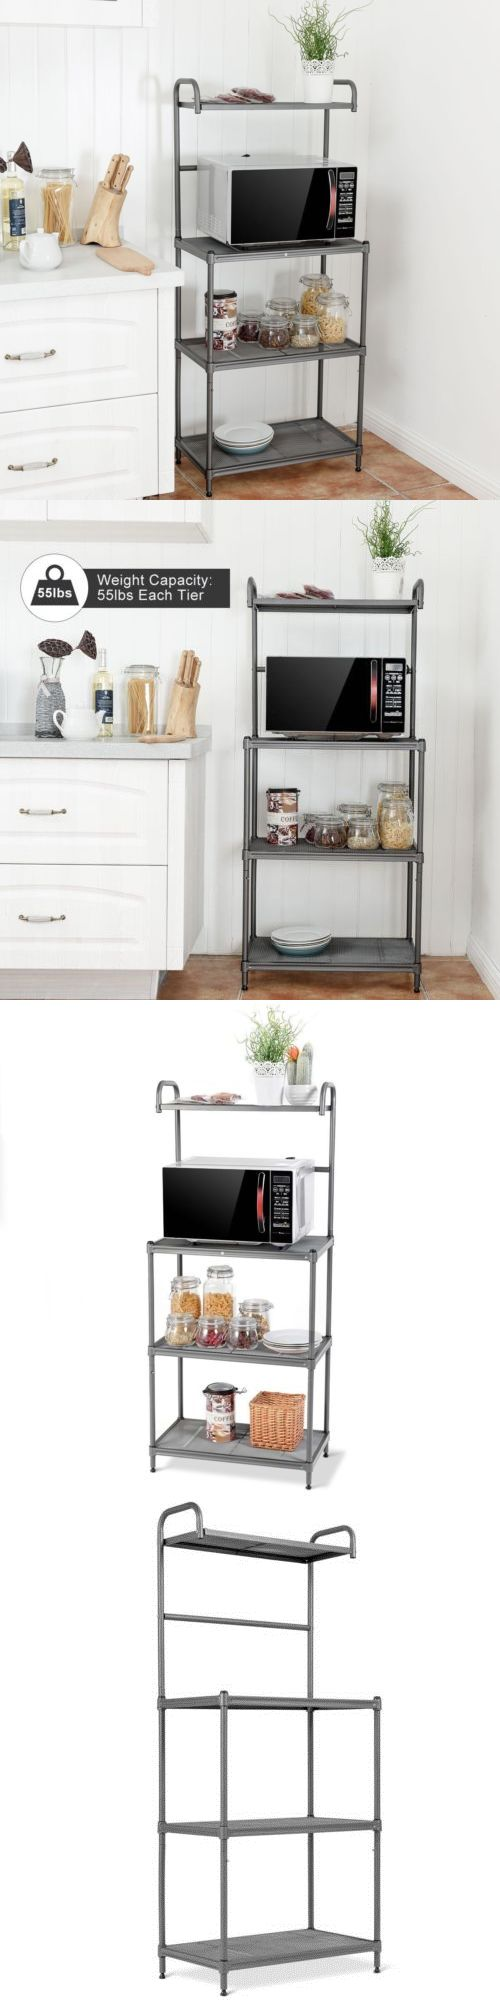 bakers racks 20482 4 tier baker s rack microwave stand shelves rh pinterest com